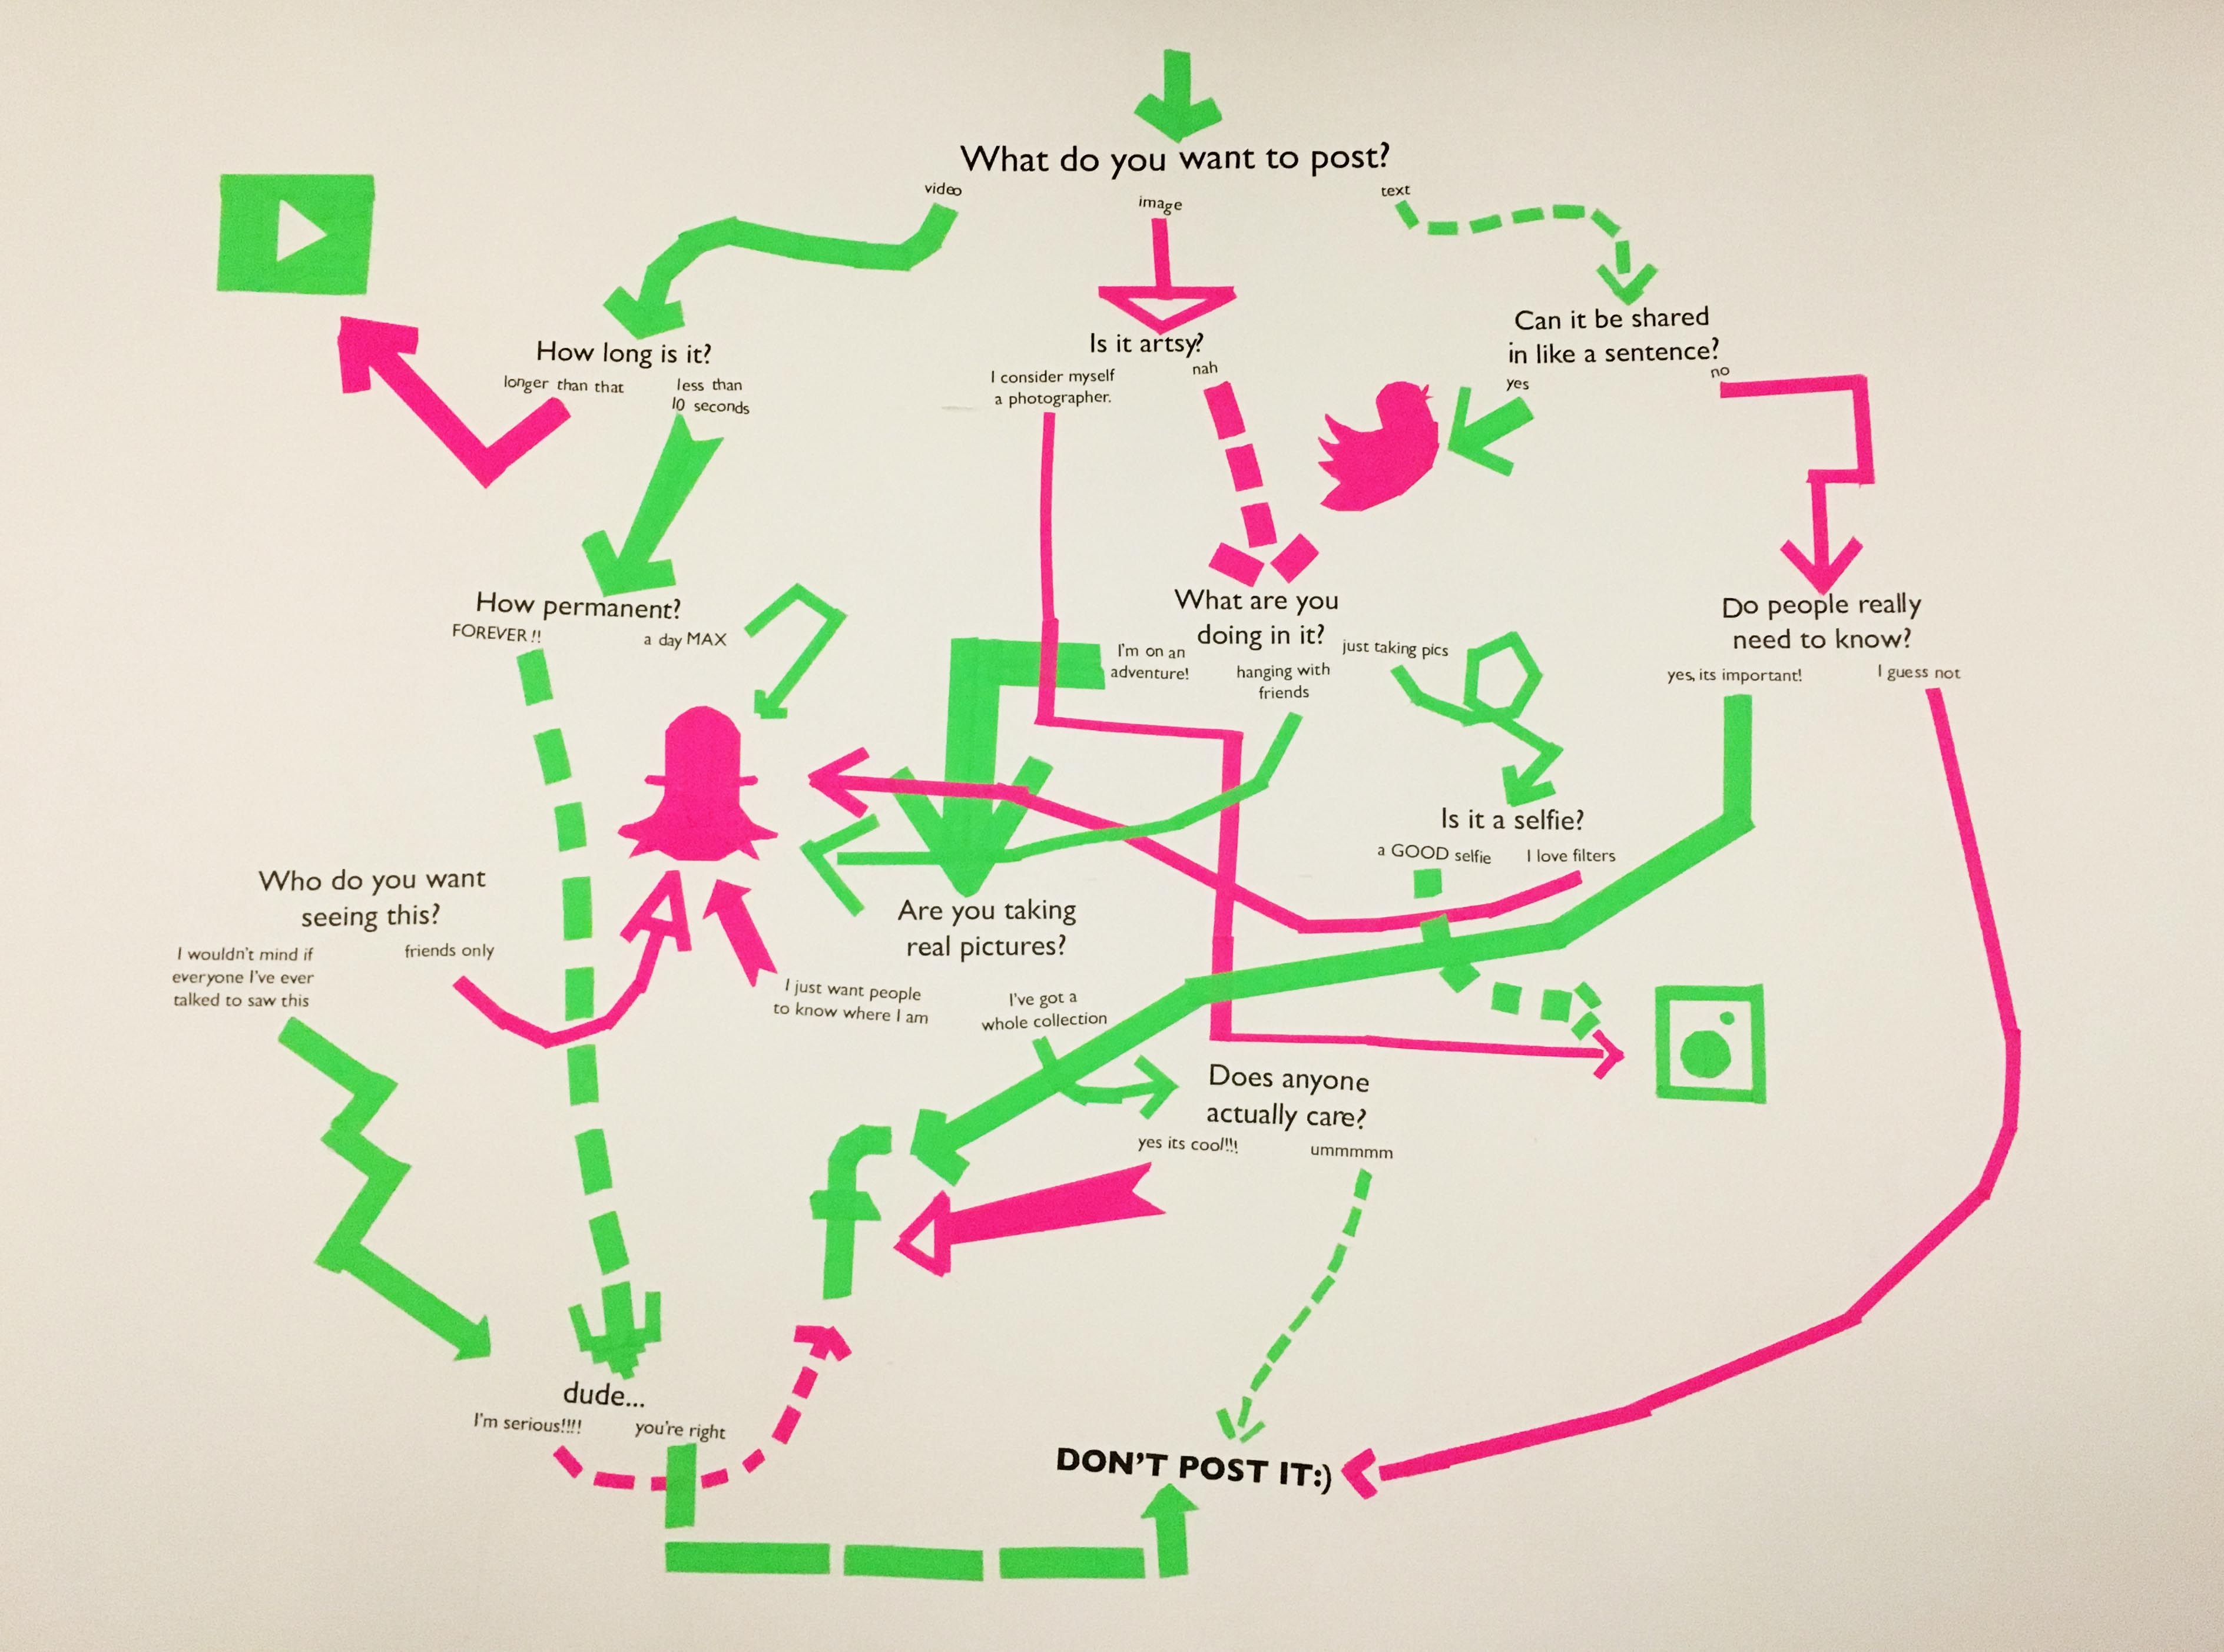 wall installation, flowchart with text connecting with green and pink arrows